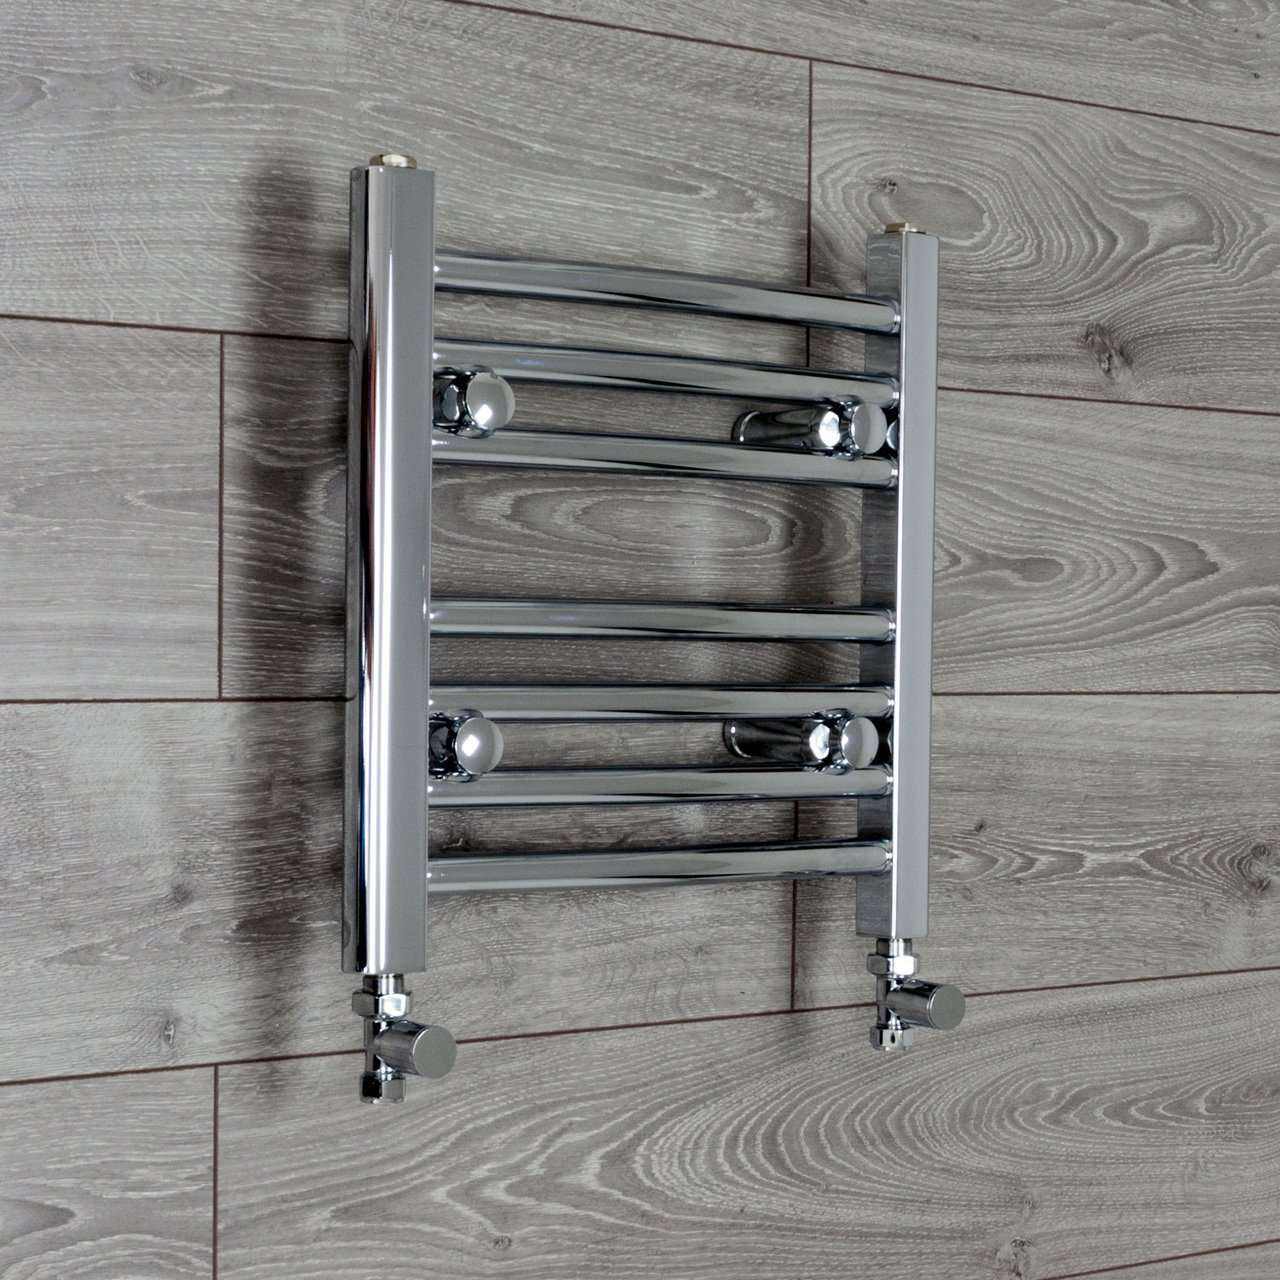 450mm Wide 400mm High Curved Chrome Heated Towel Rail Radiator HTR,With Straight Valve